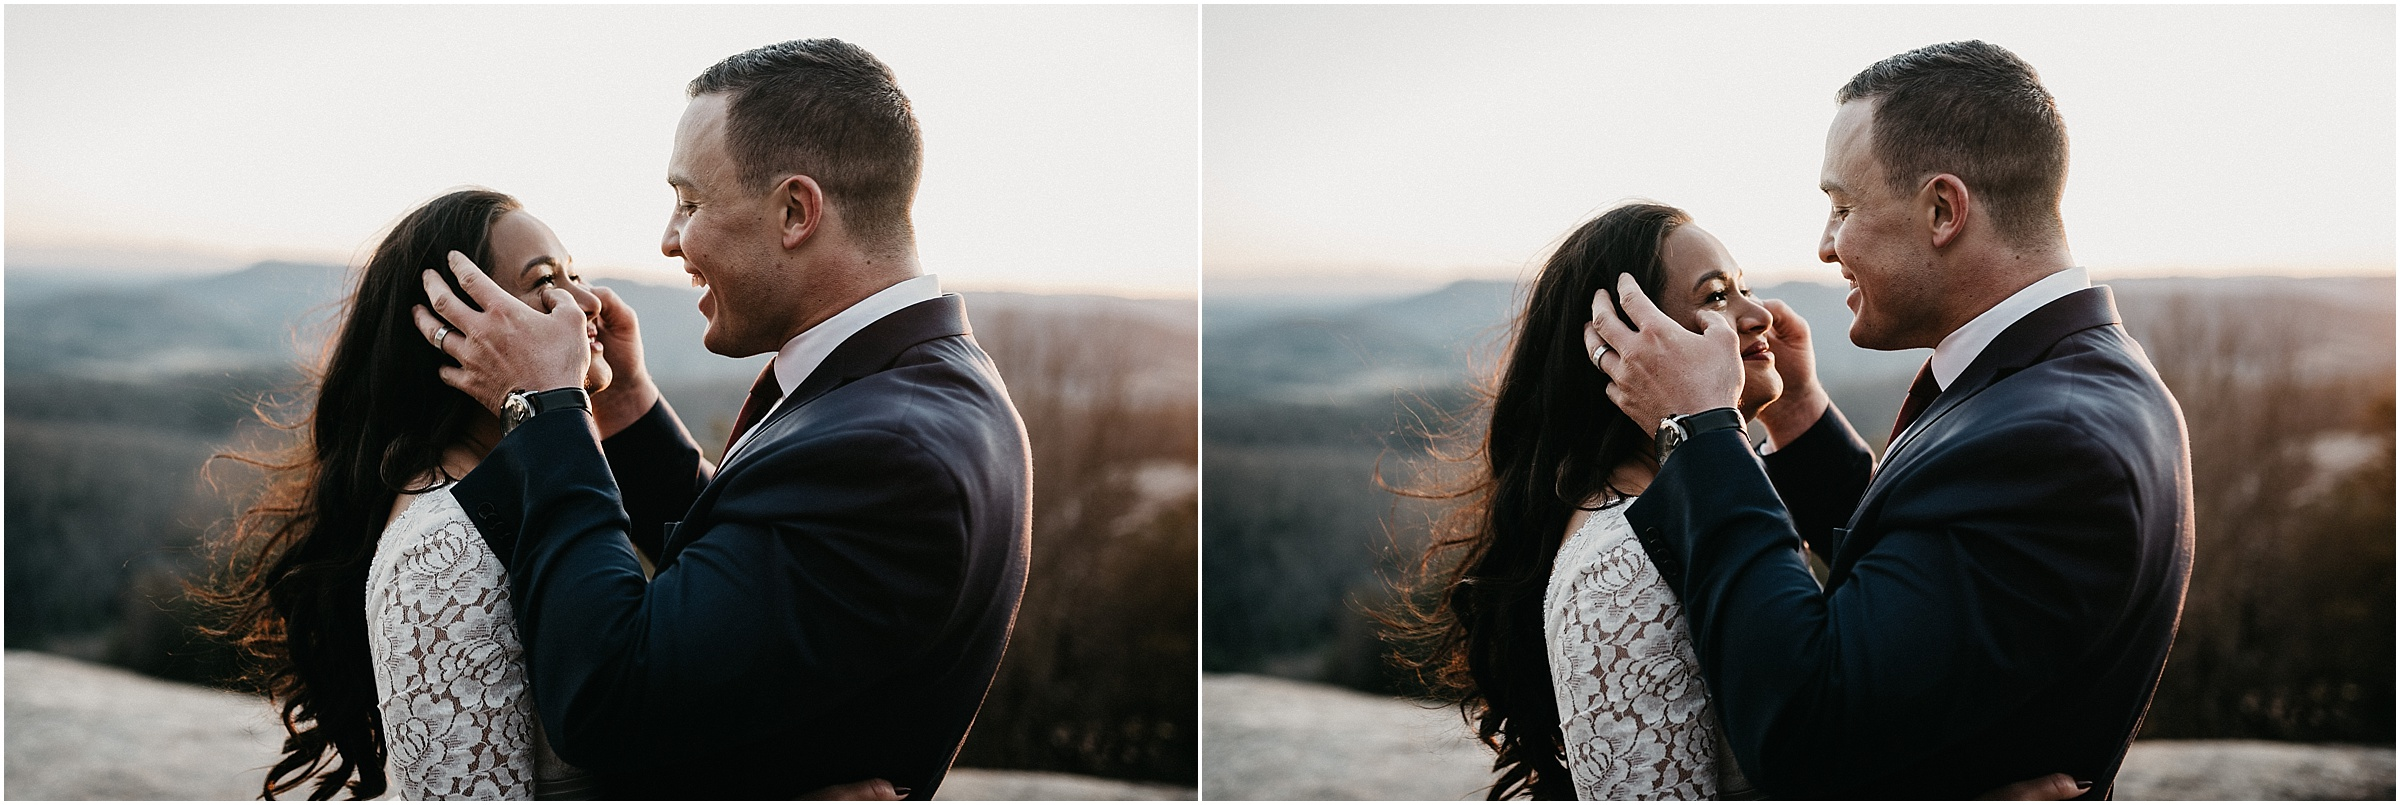 Stone_Mountain_NC_Elopement_58.JPG